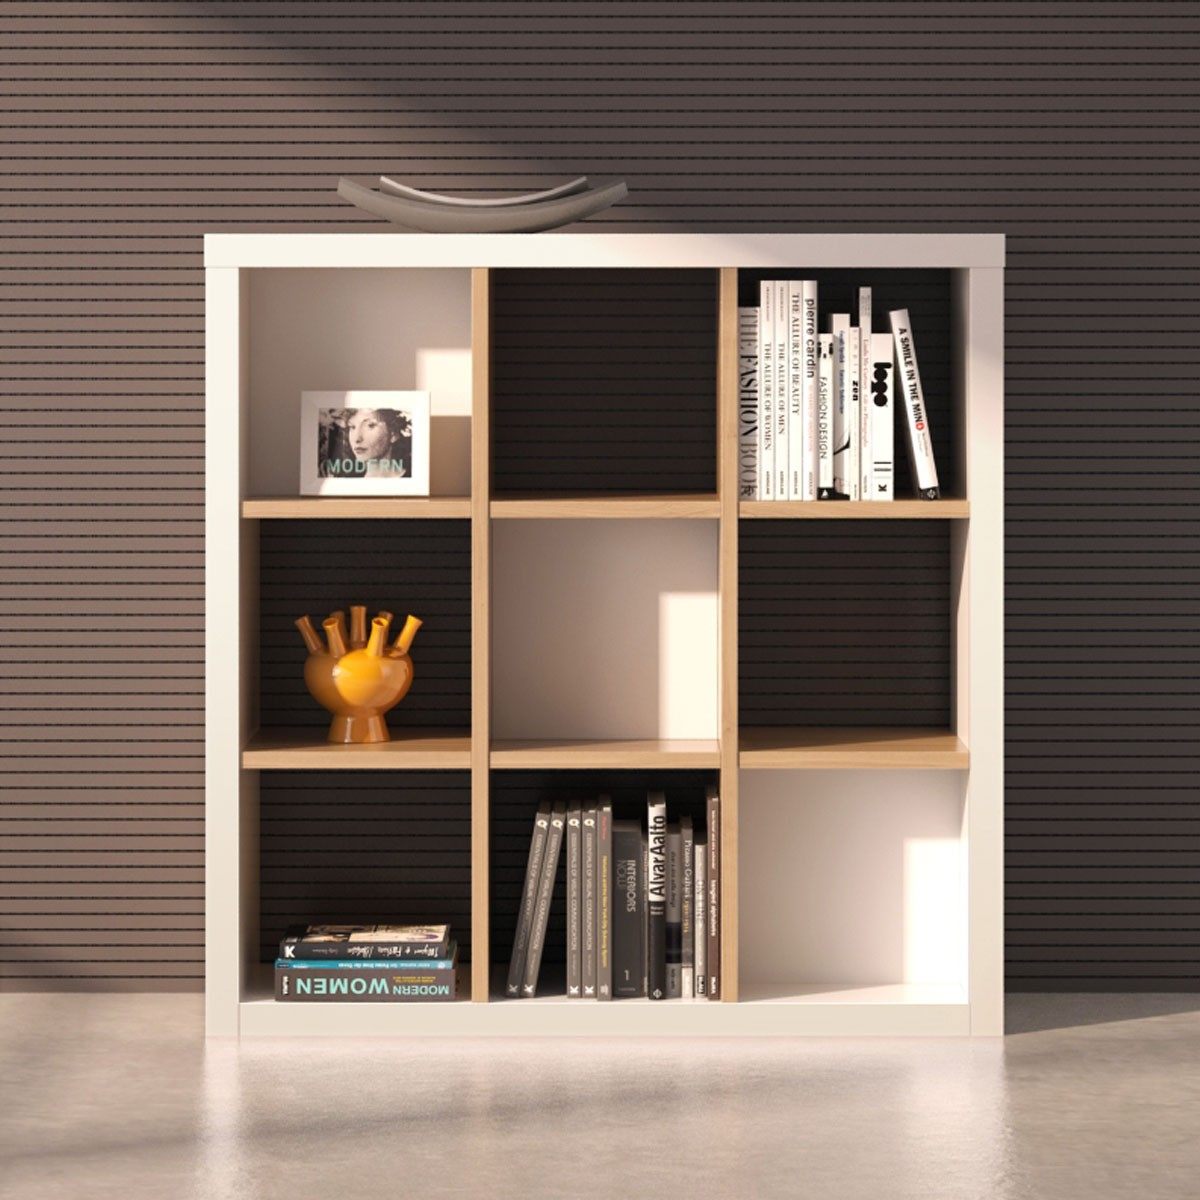 """Shelving Unit 47.2""""H x 47.2""""W x 15.7""""D in Oak and White (CG51)"""